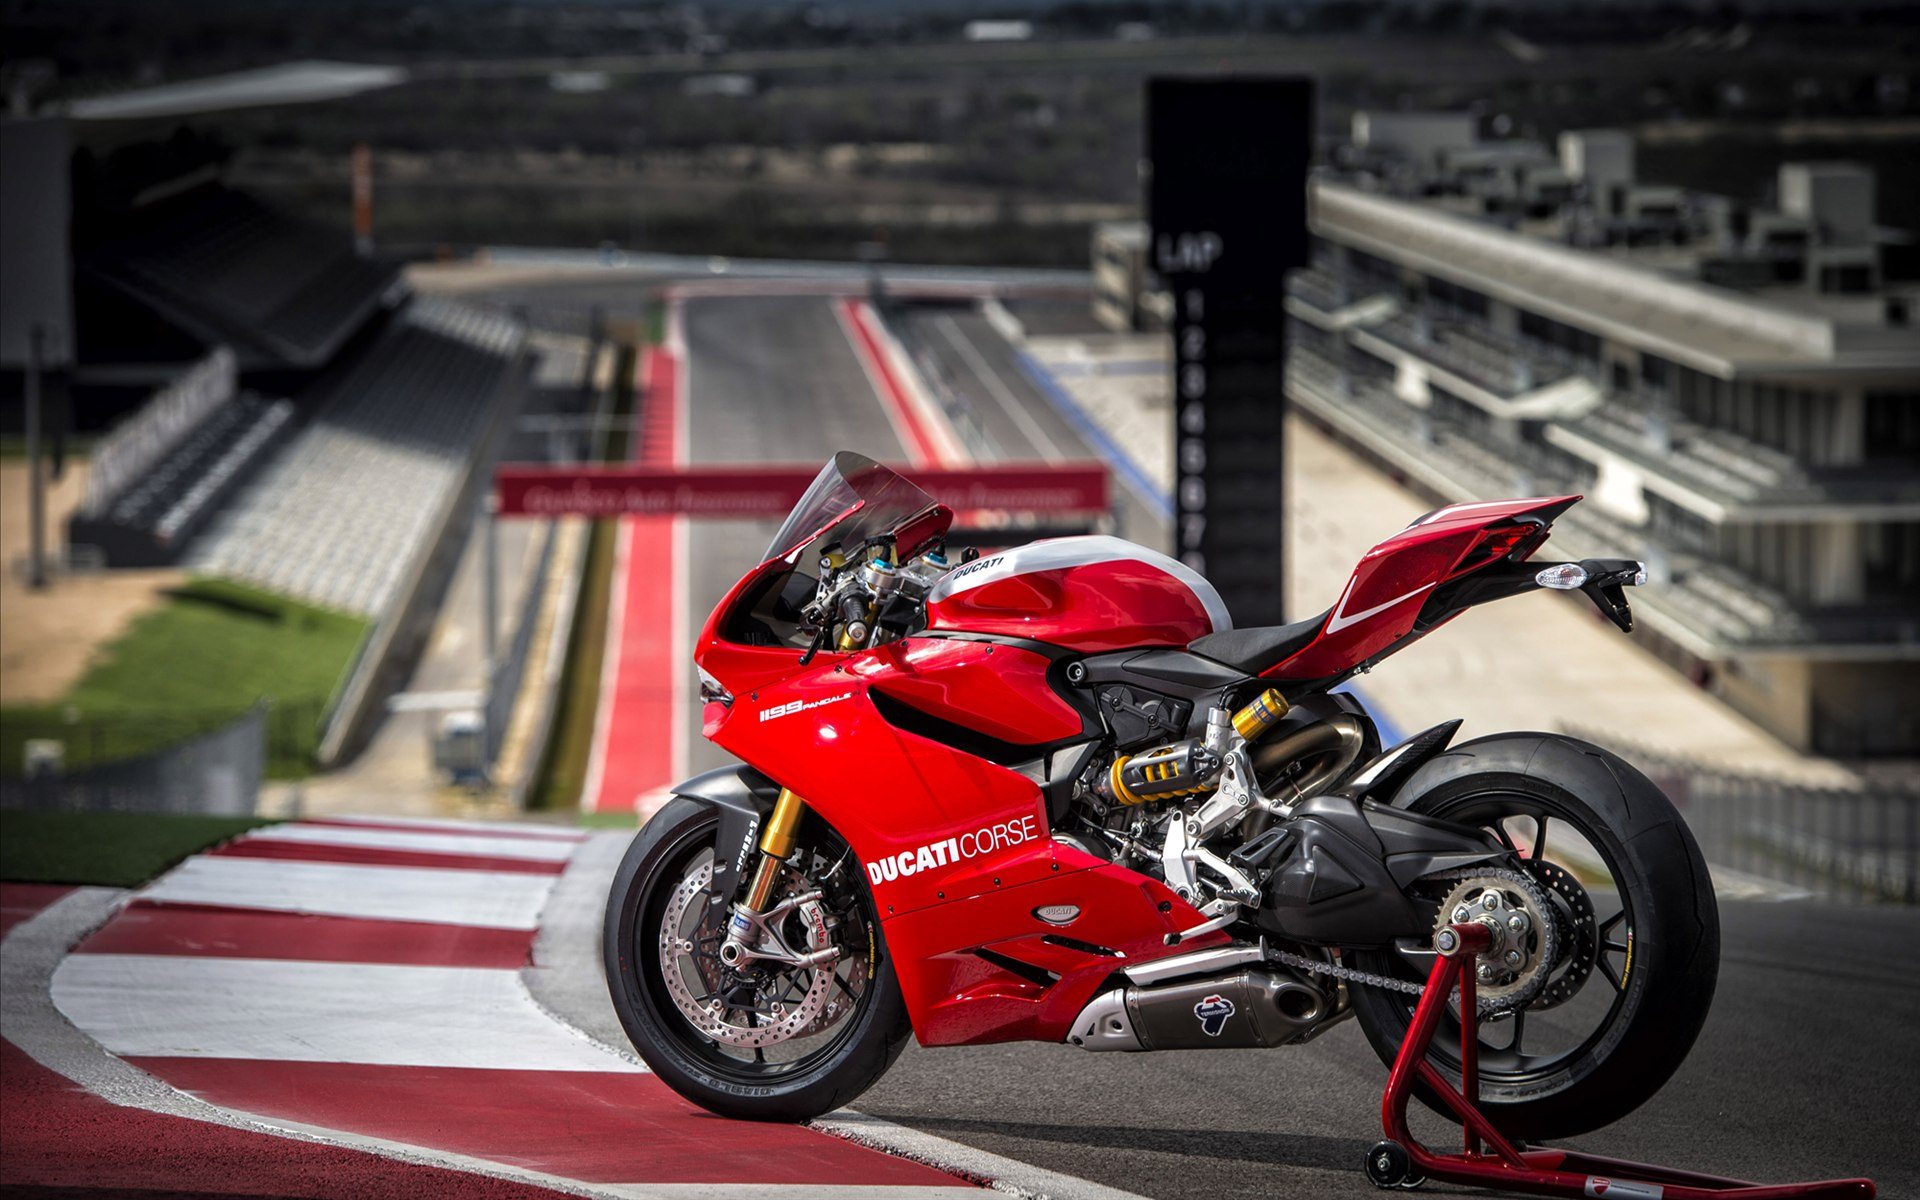 2013 Ducati Superbike 1199 Panigale R Wallpapers HD Wallpapers 1920x1200